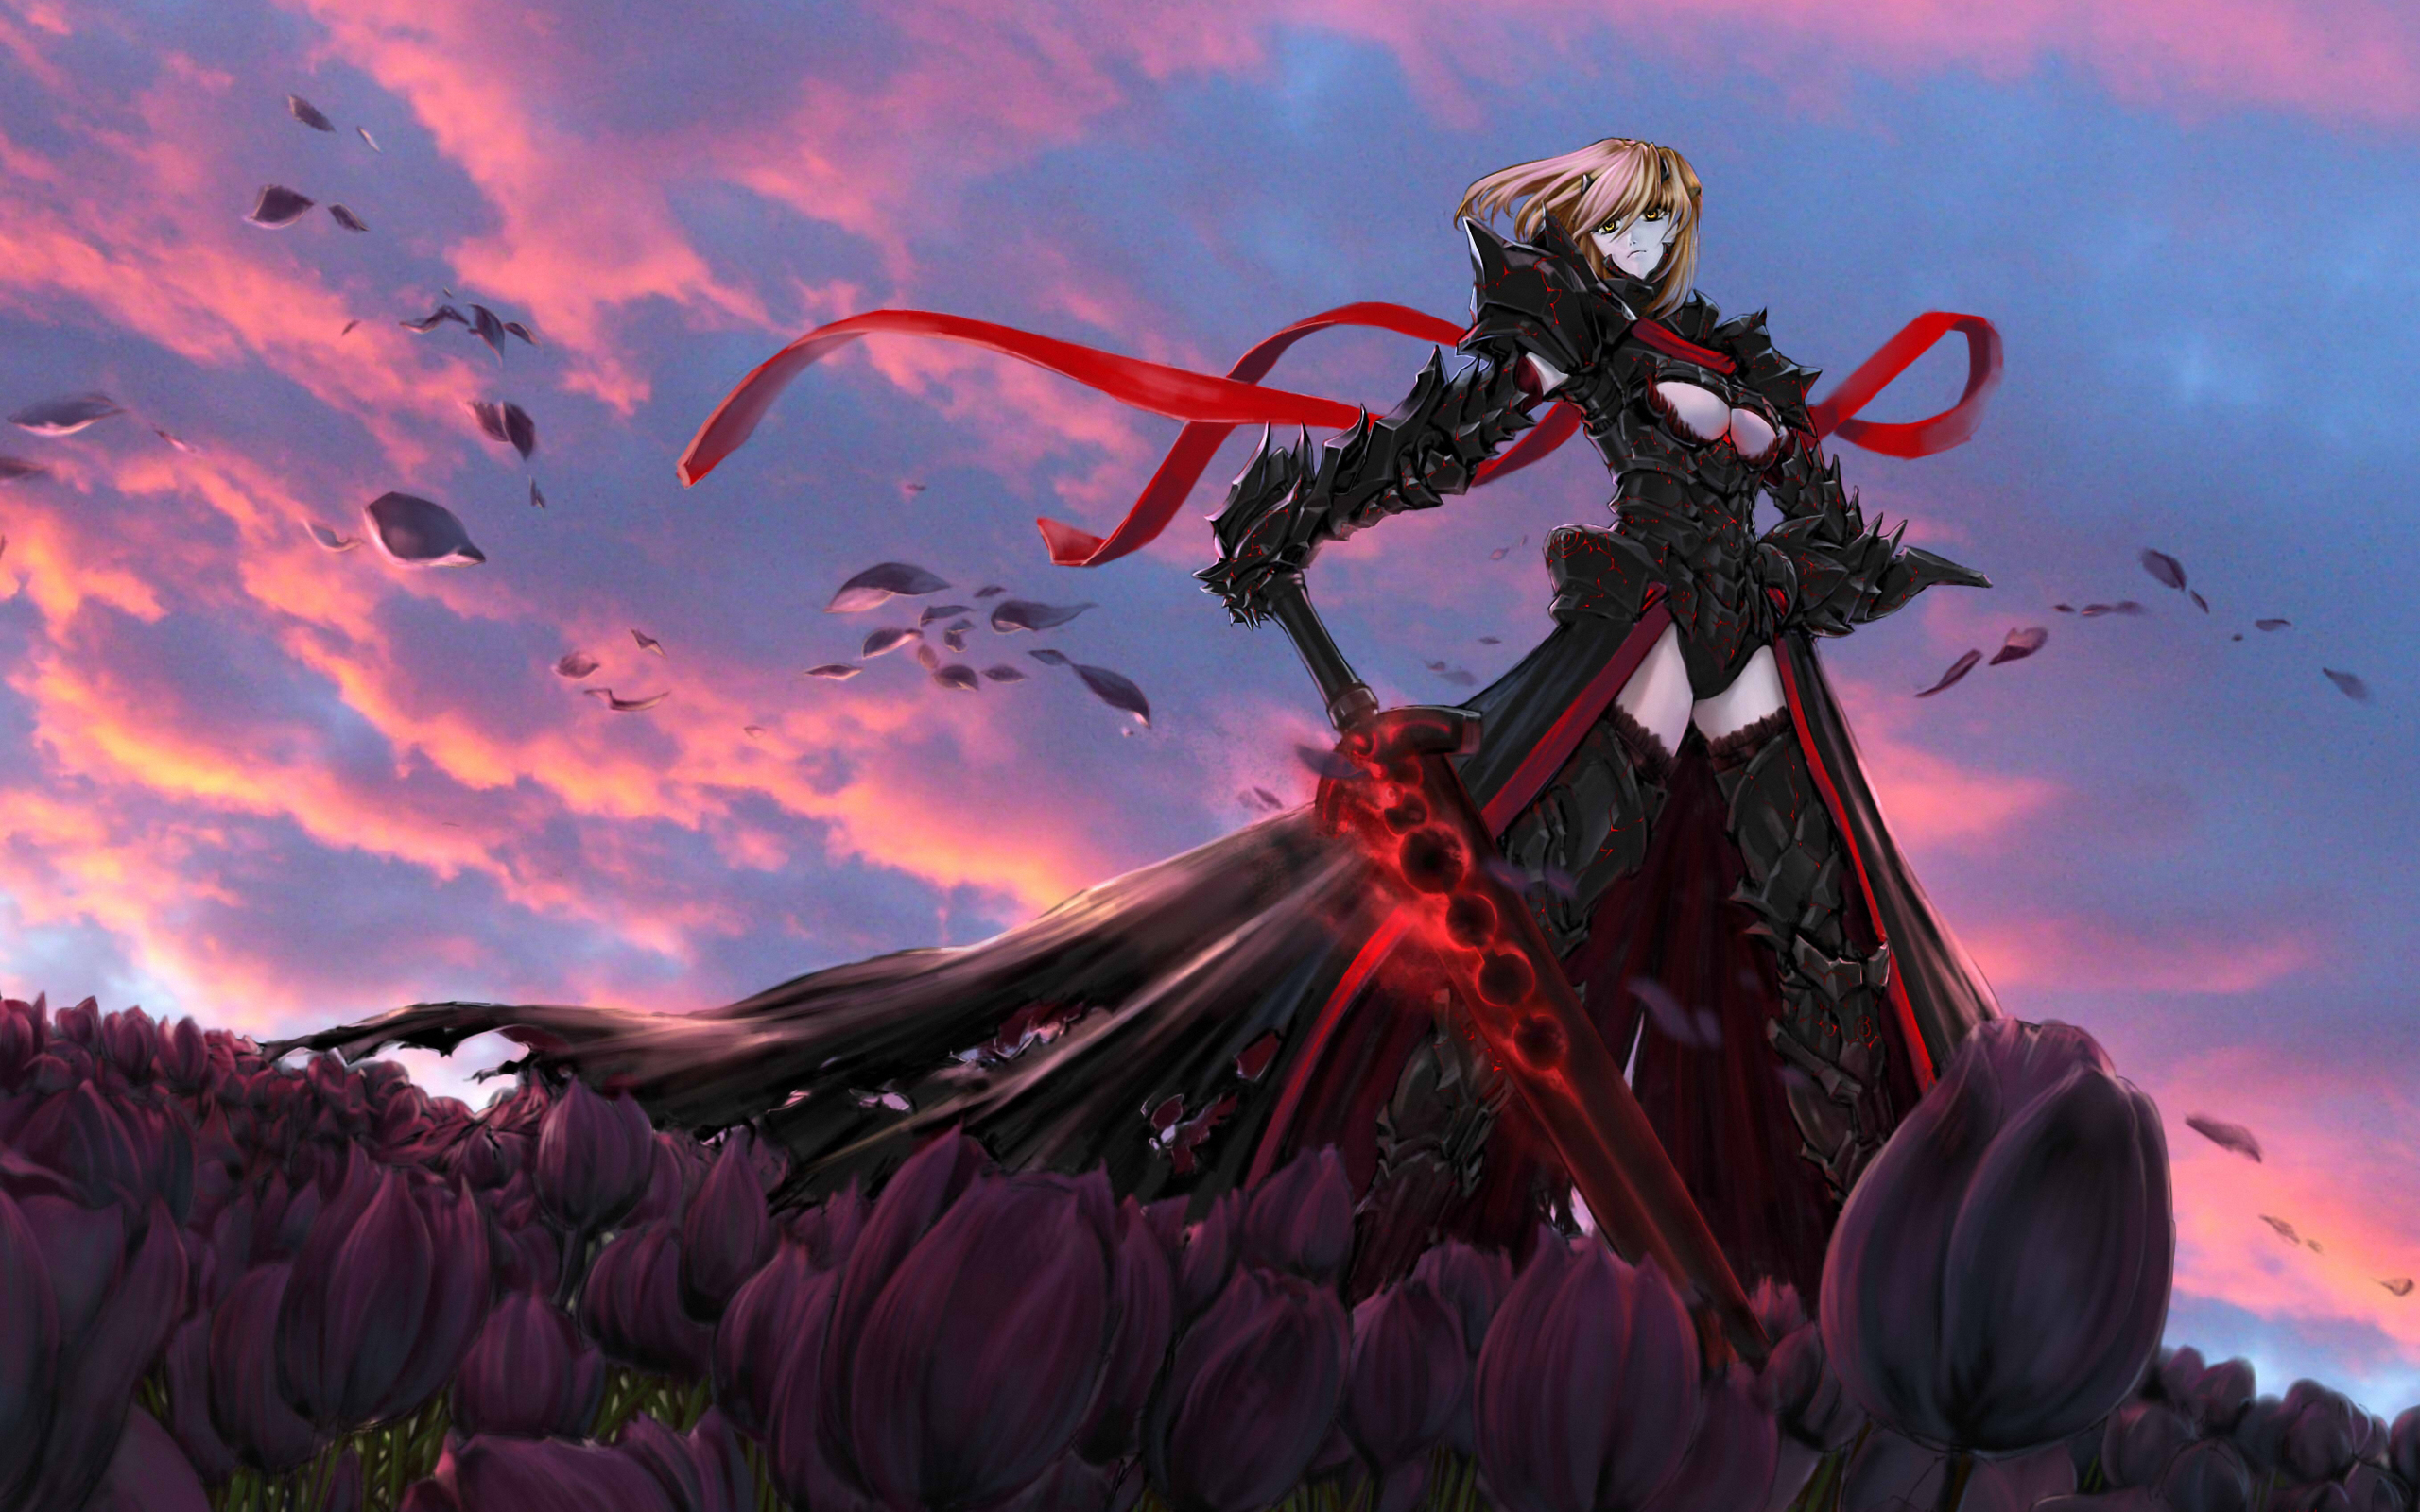 Fate stay night movie heaven 39 s feel hd wallpaper background image 2560x1600 id 195697 - Fate stay night wallpaper ...